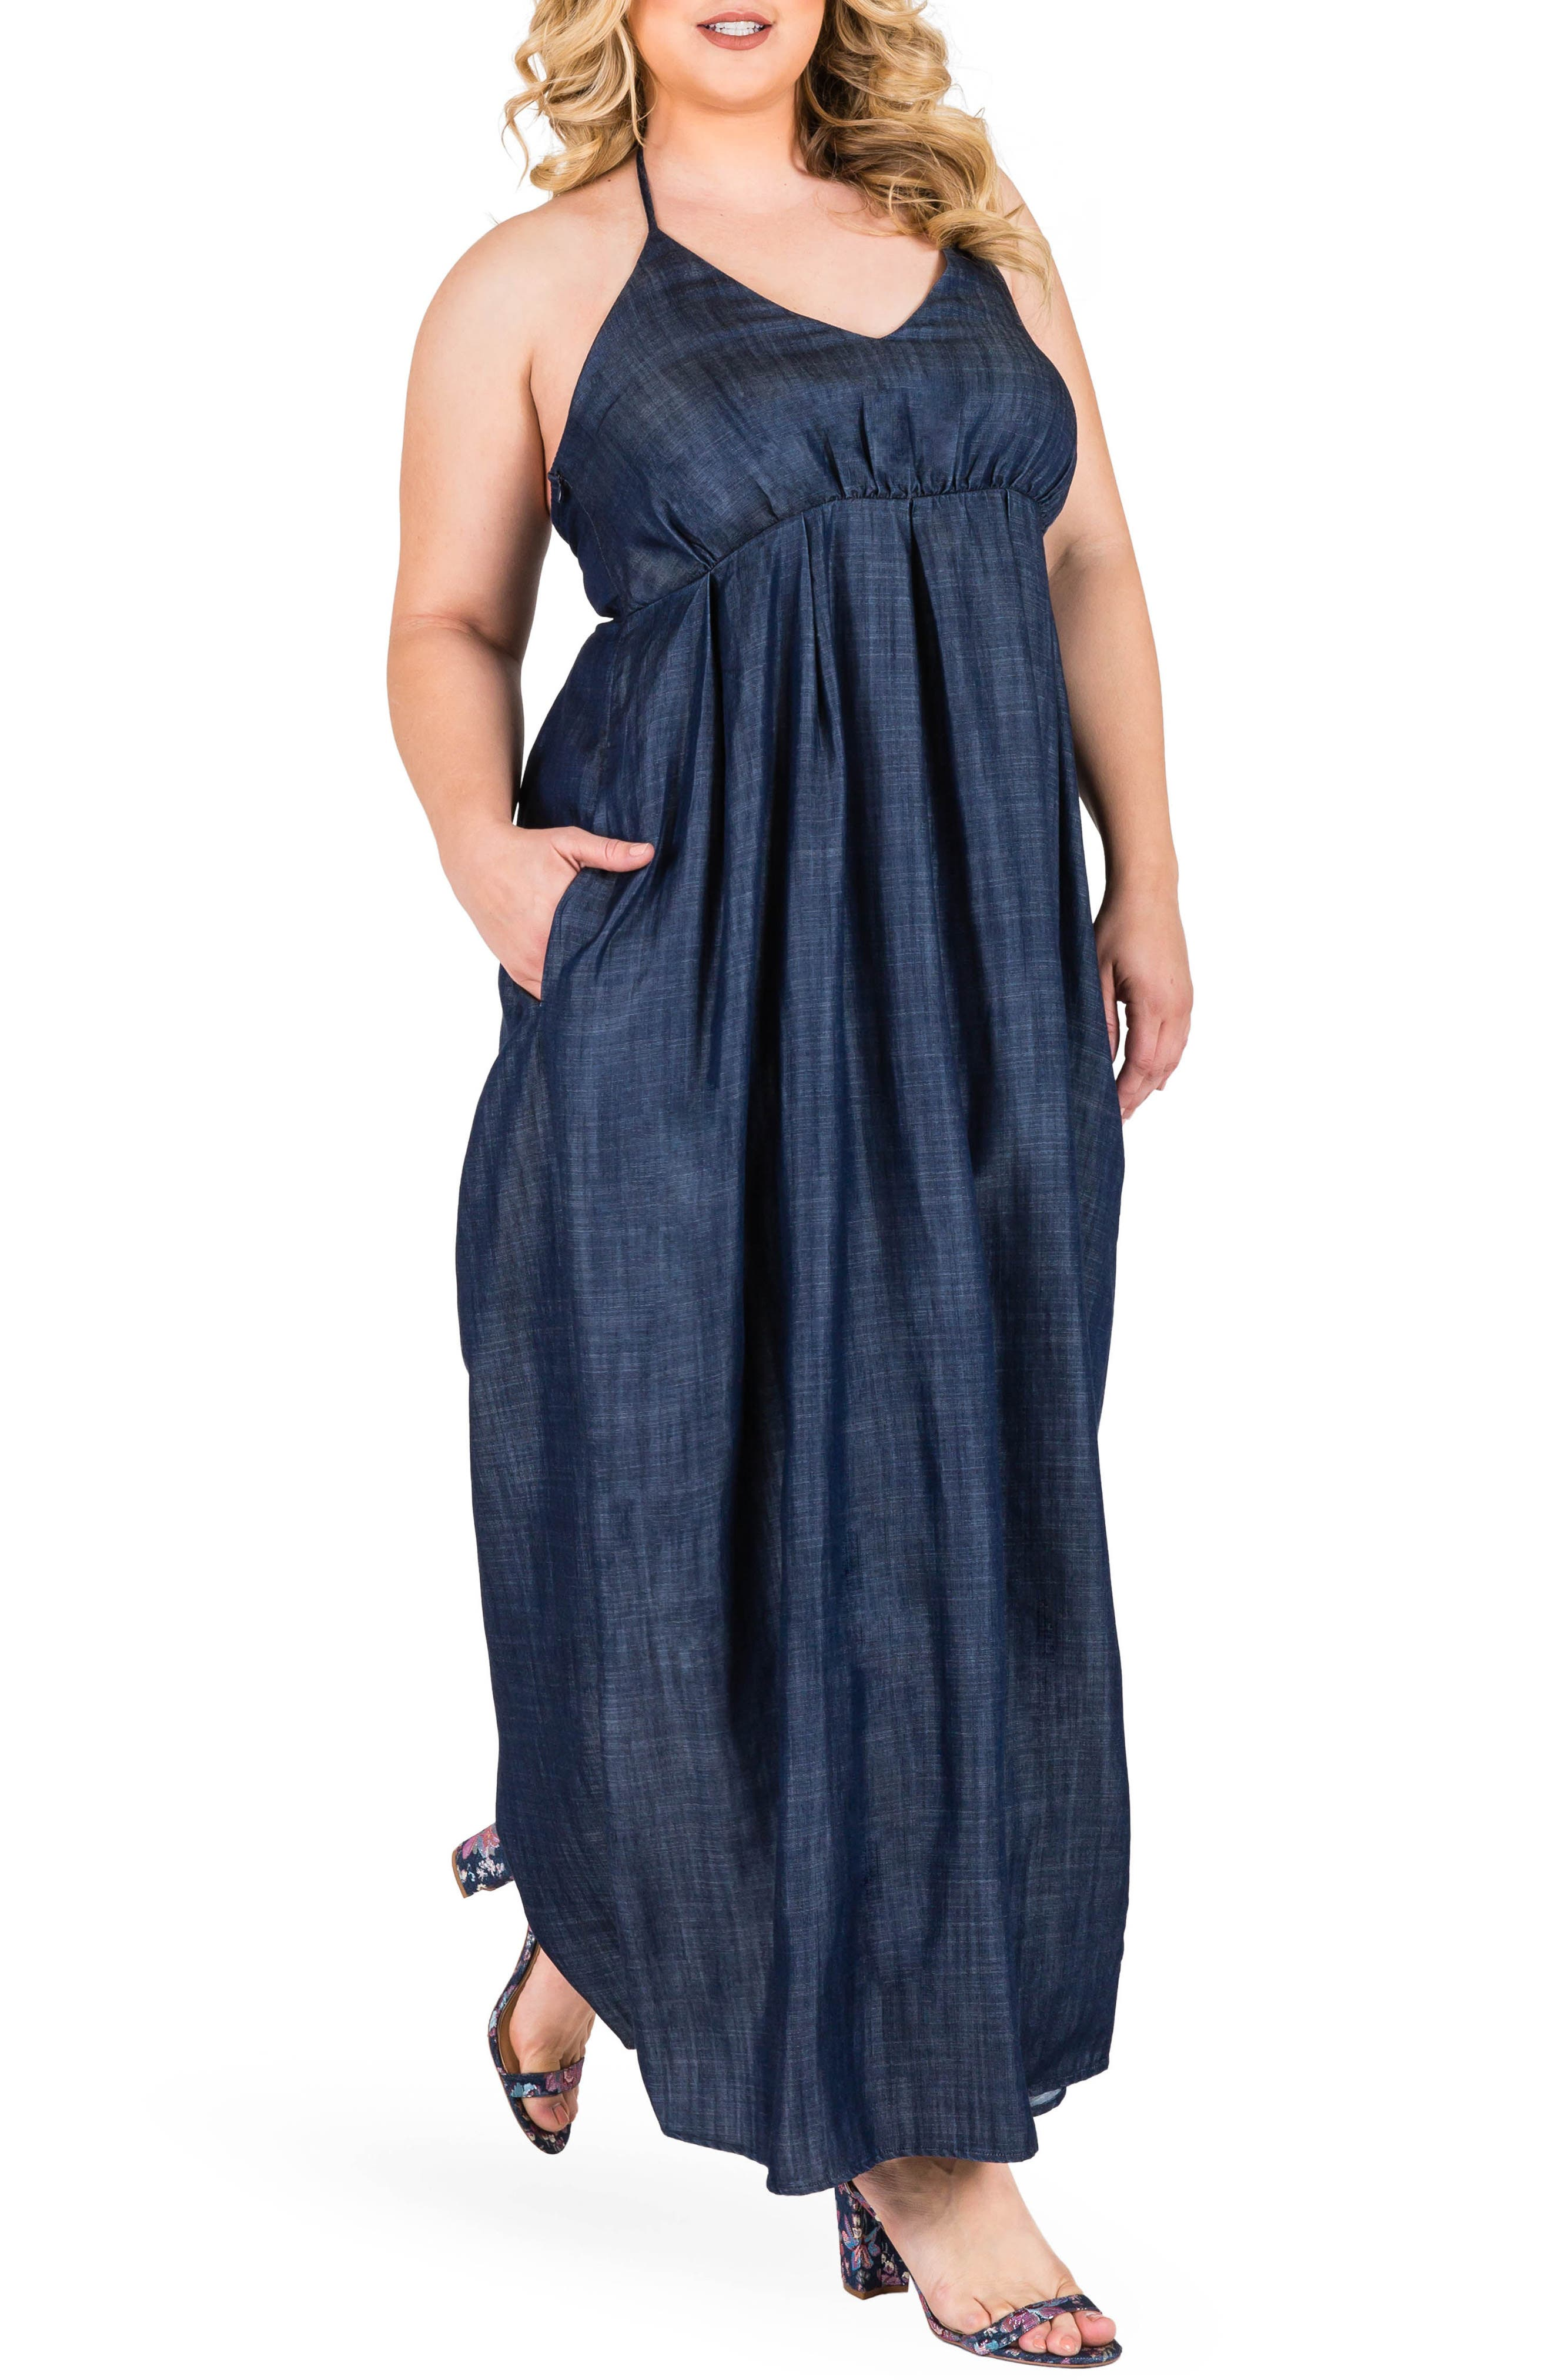 Maui Maxi Chambray Halter Dress,                             Main thumbnail 1, color,                             Dark Blue